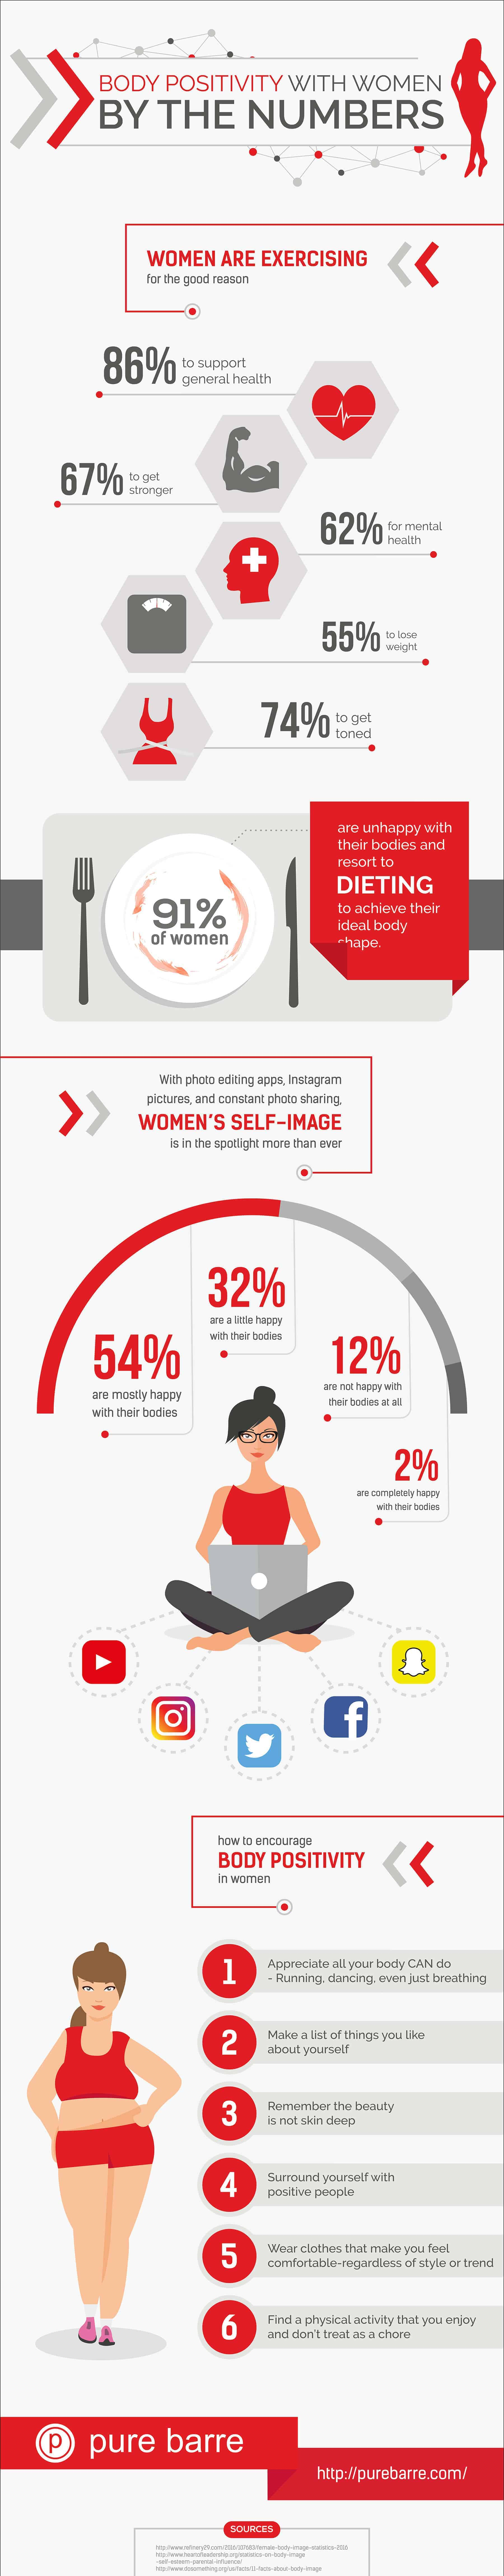 infographic reasons women diet and how to feel better about yourself through positive self image